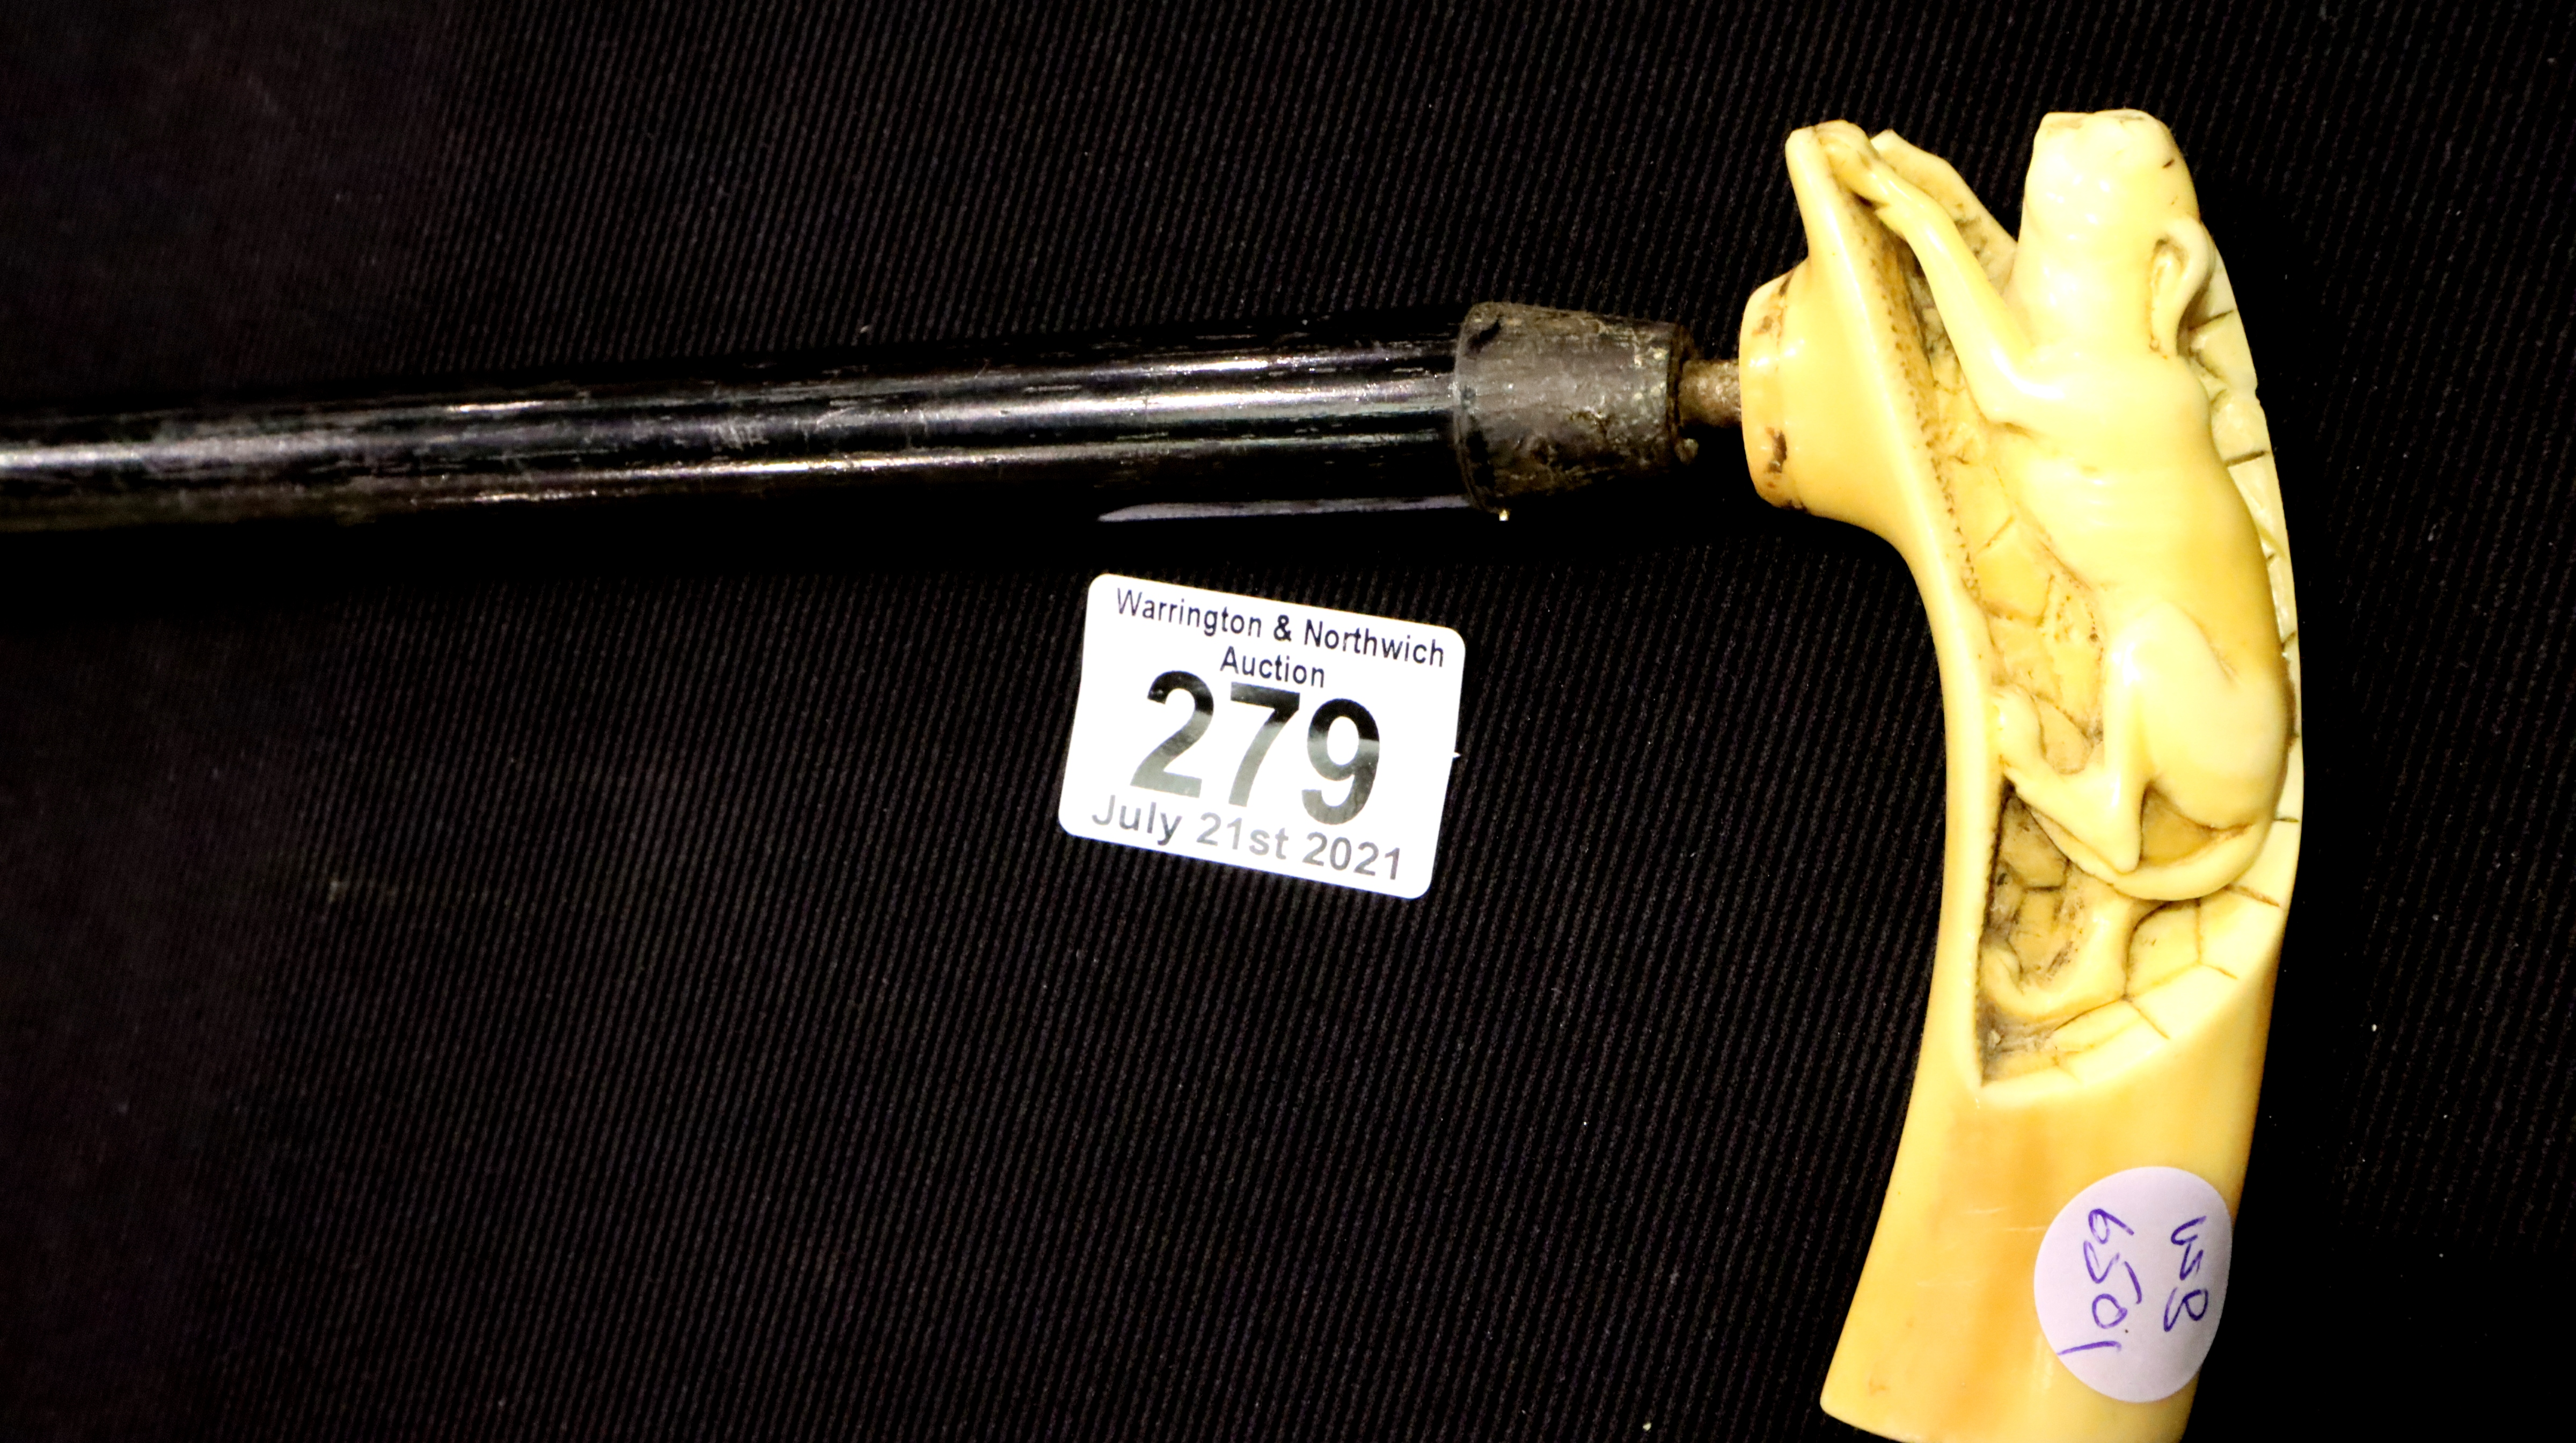 Bone handled walking stick, H: 88 cm. P&P Group 3 (£25+VAT for the first lot and £5+VAT for